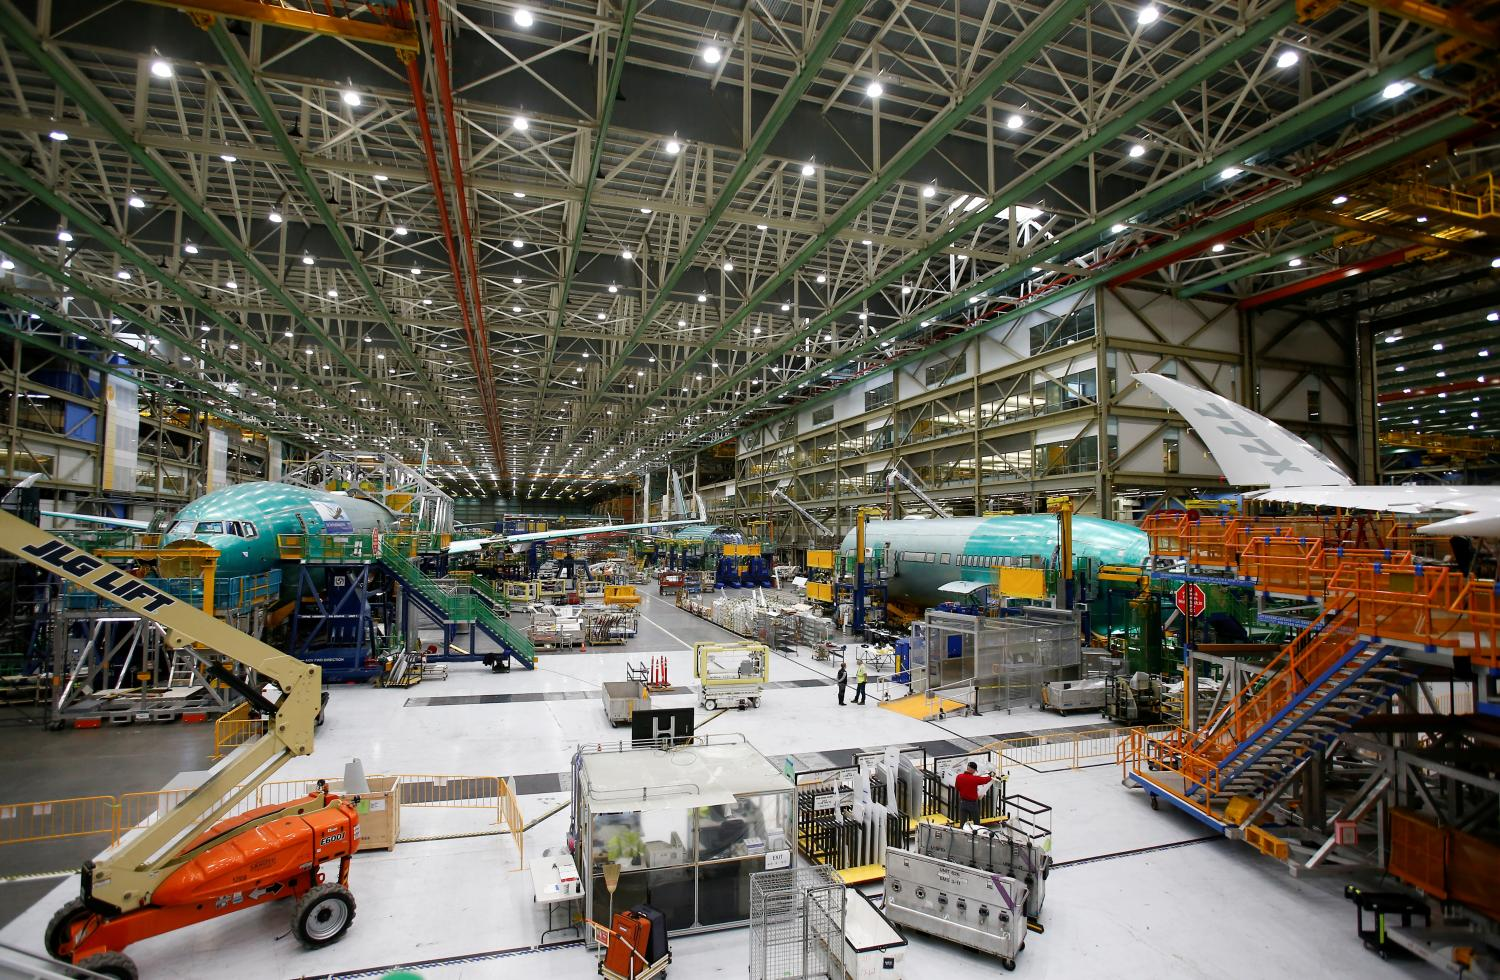 Several 777X aircraft are seen in various stages of production during a media tour of Boeing Co's production facility in Everett, Washington on Feb 27, 2019. (Reuters photo)